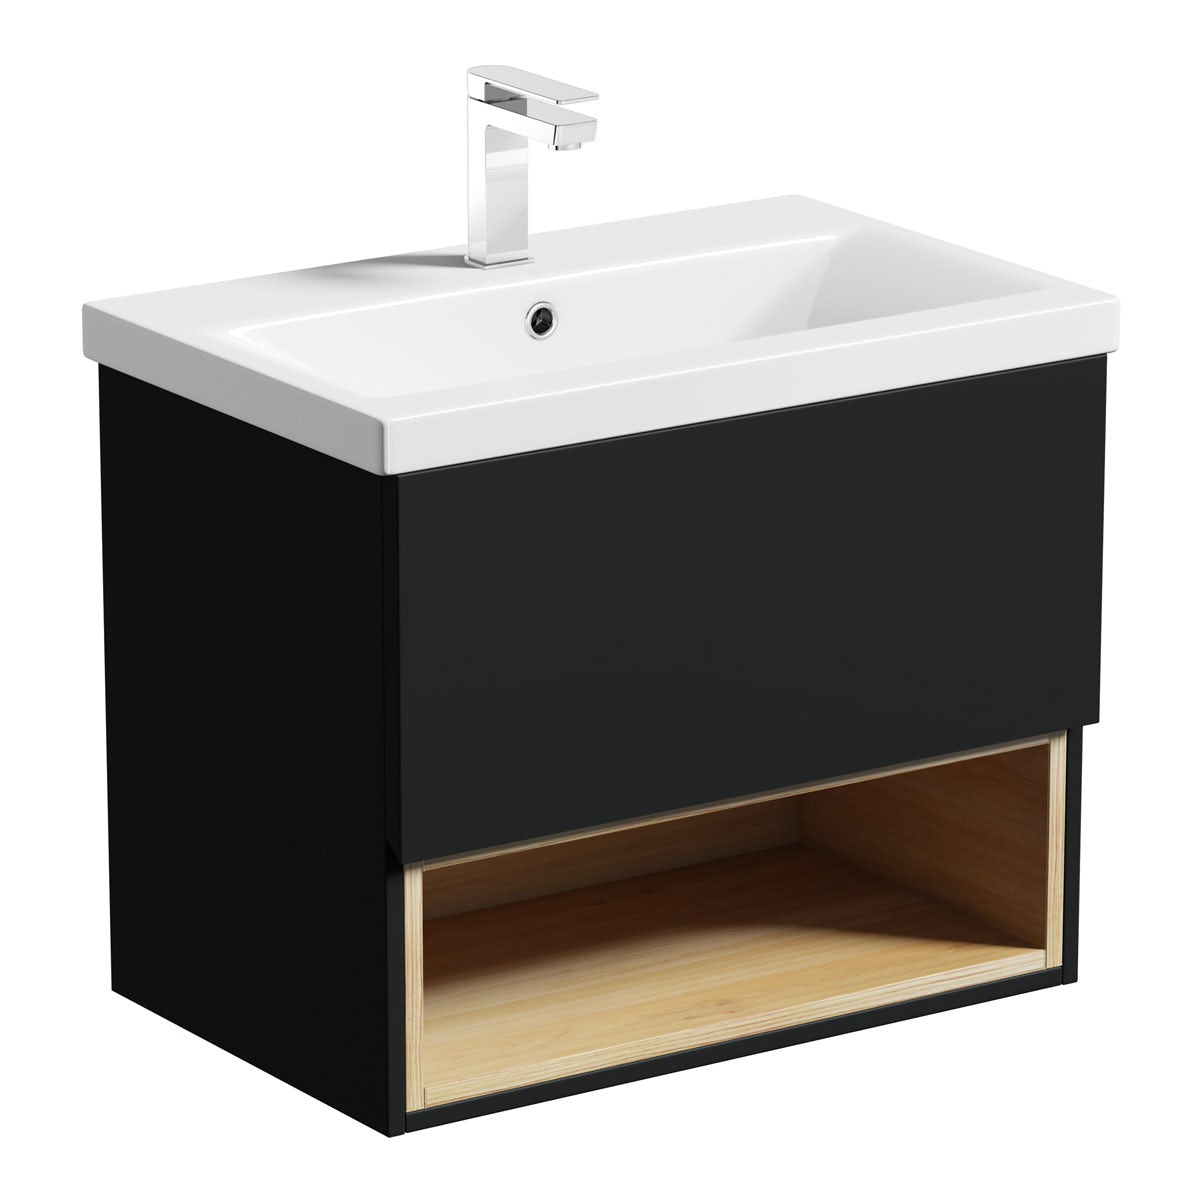 Black bathroom cabinet - Mode Tate Anthracite Oak 600mm Wall Hung Vanity Unit With Basin